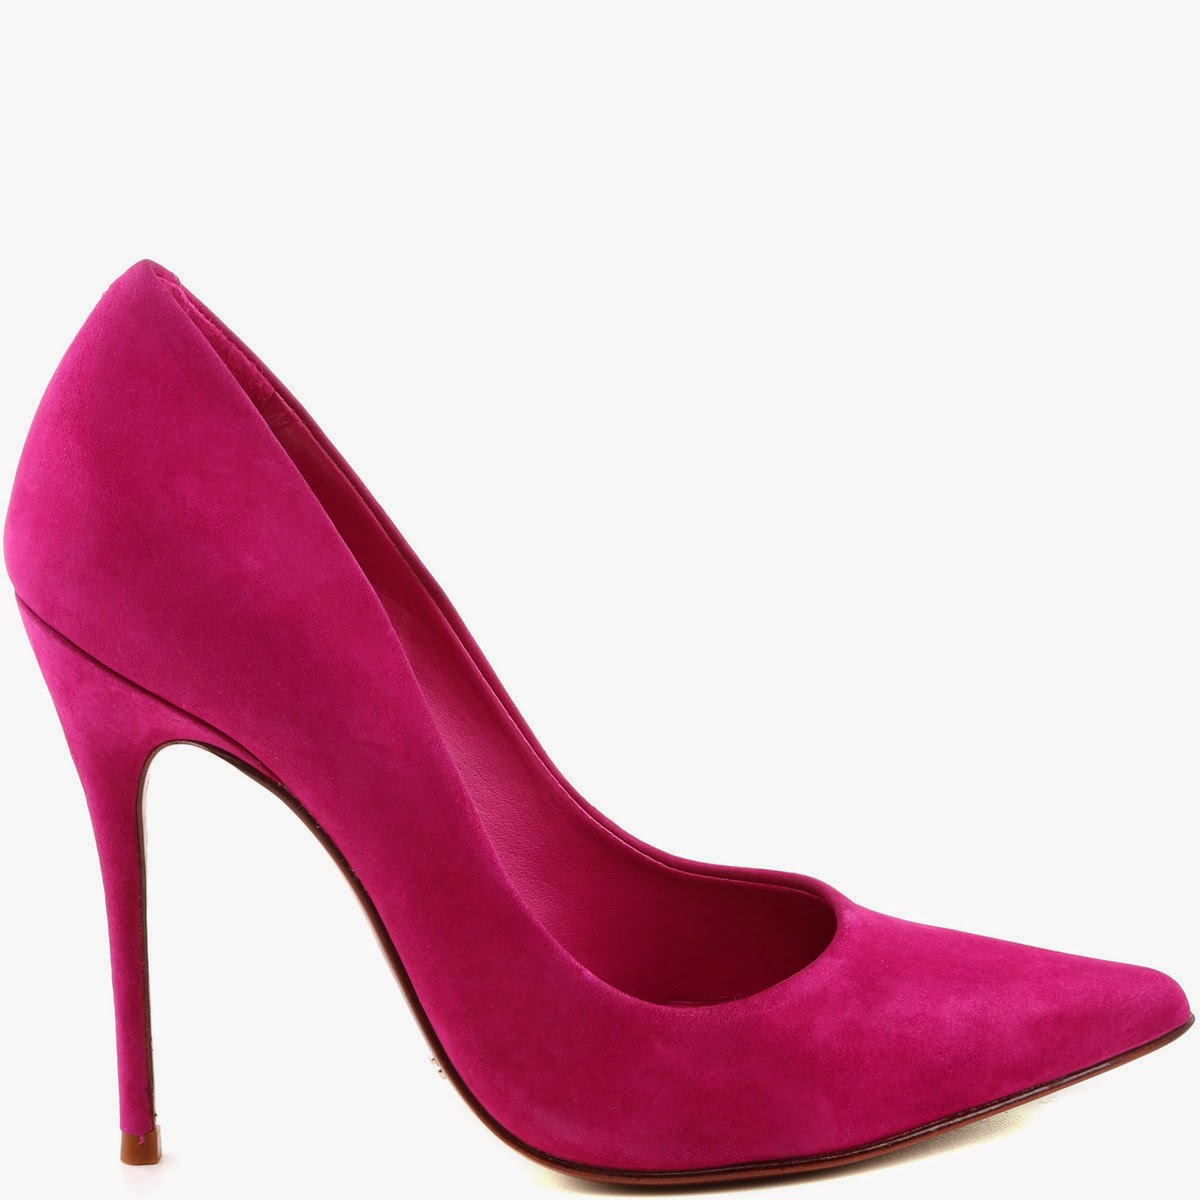 Schutz Pinktober pointed pump